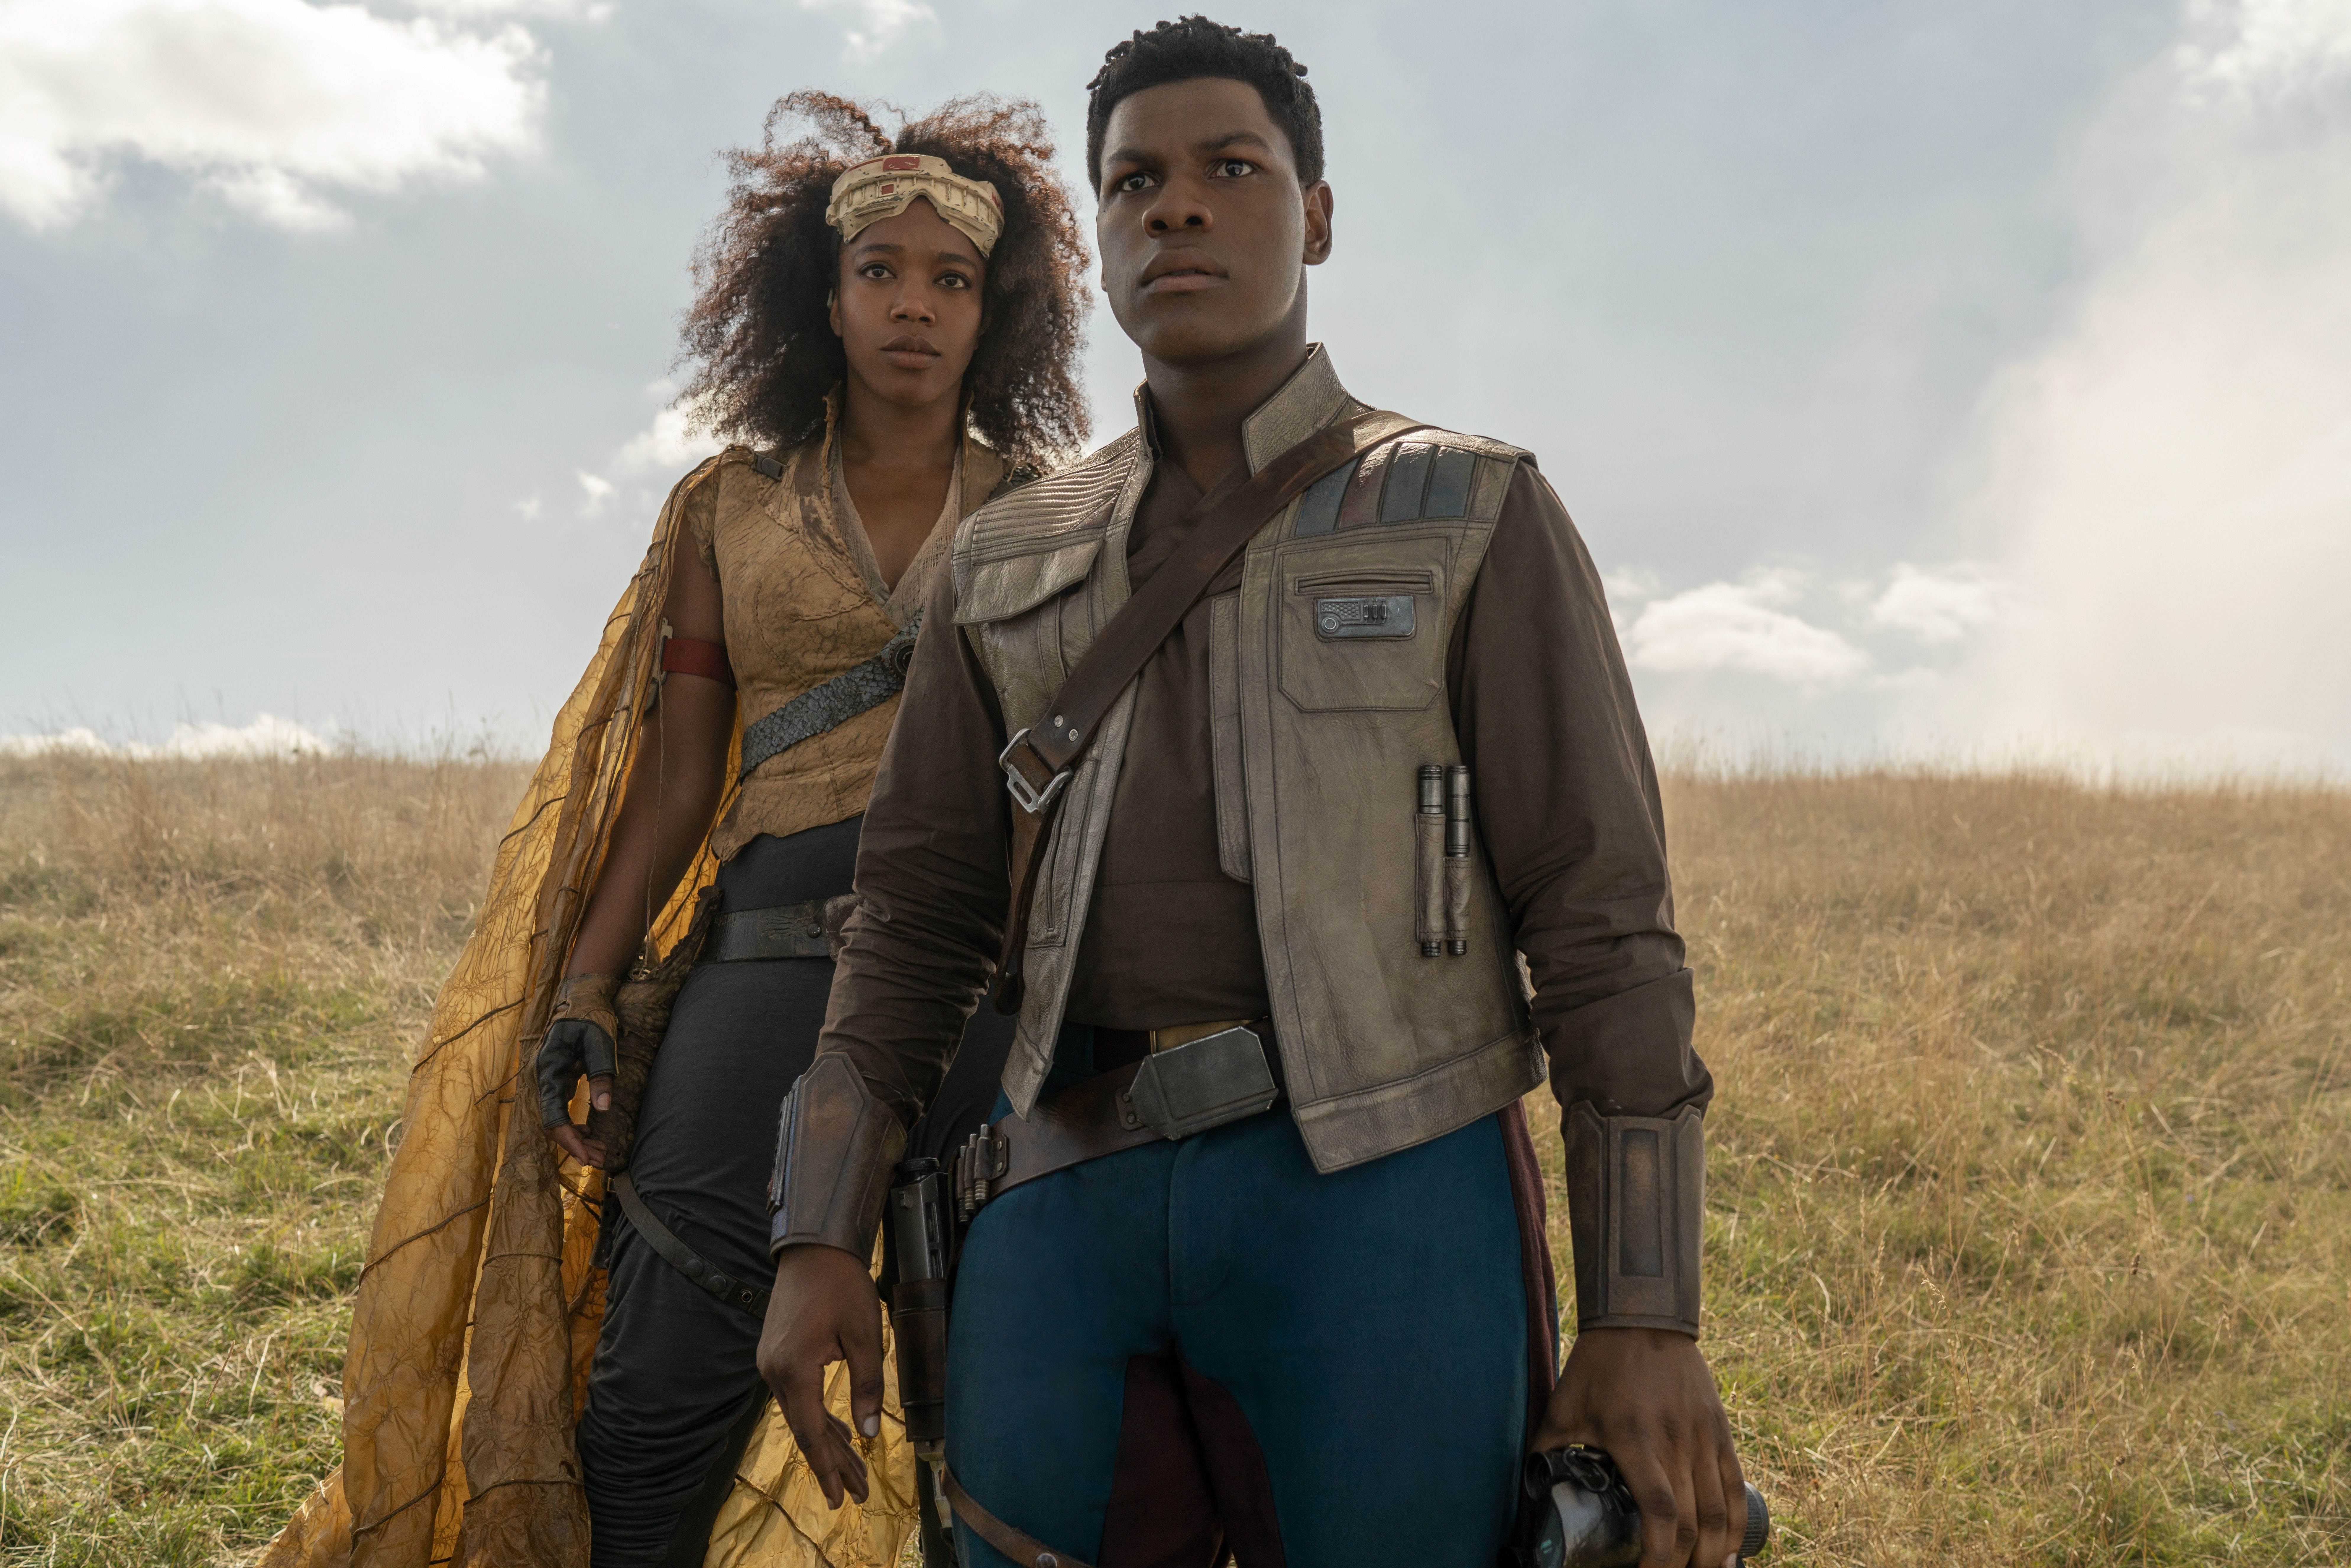 Editorial use only. No book cover usage.Mandatory Credit: Photo by J Wilson/Lucasfilm/Disney/Kobal/Shutterstock (10509667f) Naomi Ackie as Jannah and John Boyega as Finn 'Star Wars: The Rise of Skywalker' Film - 2019 The surviving members of the resistance face the First Order once again, and the legendary conflict between the Jedi and the Sith reaches its peak bringing the Skywalker saga to its end.